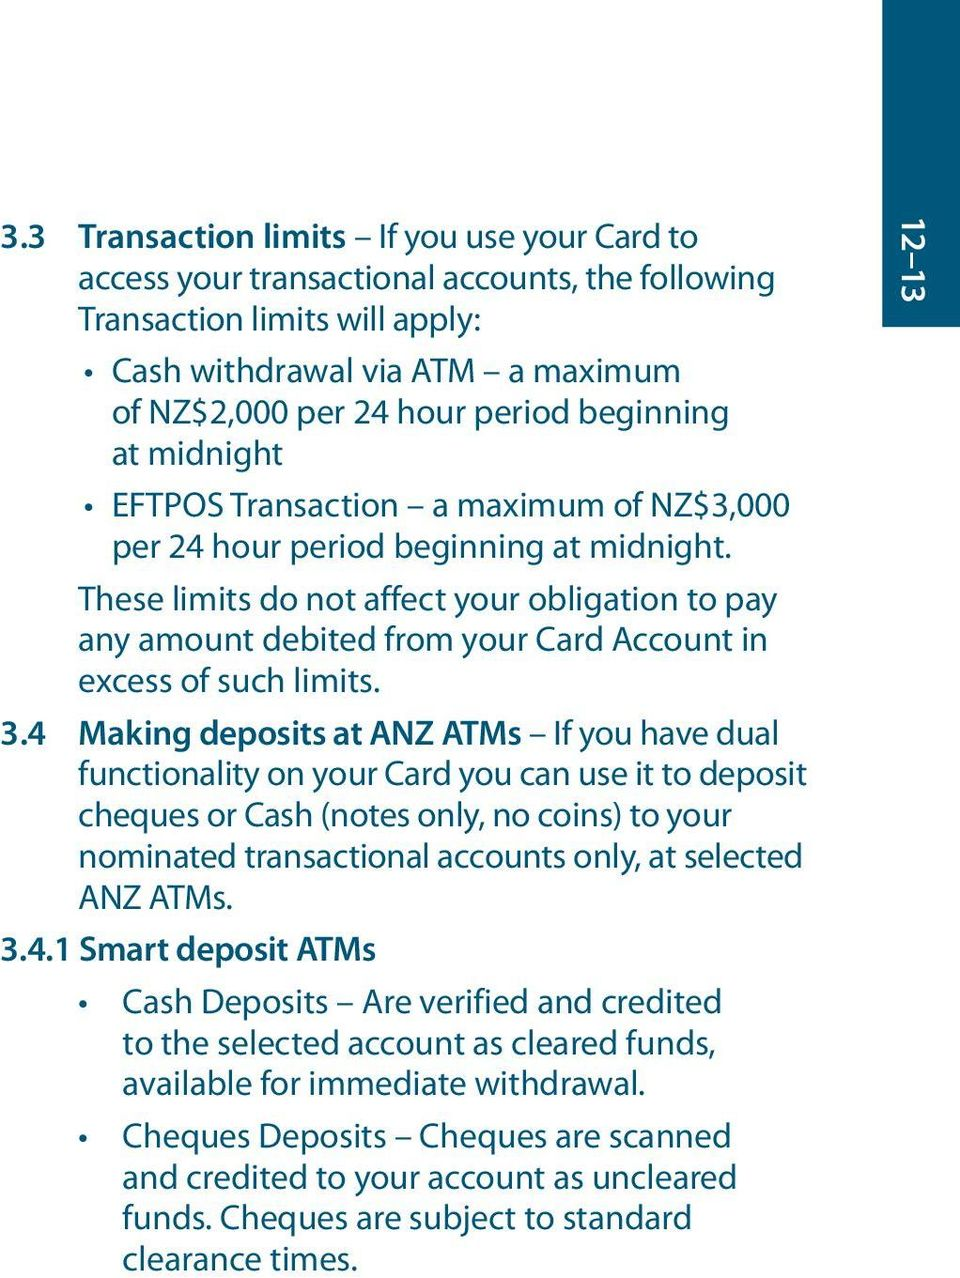 These limits do not affect your obligation to pay any amount debited from your Card Account in excess of such limits. 3.